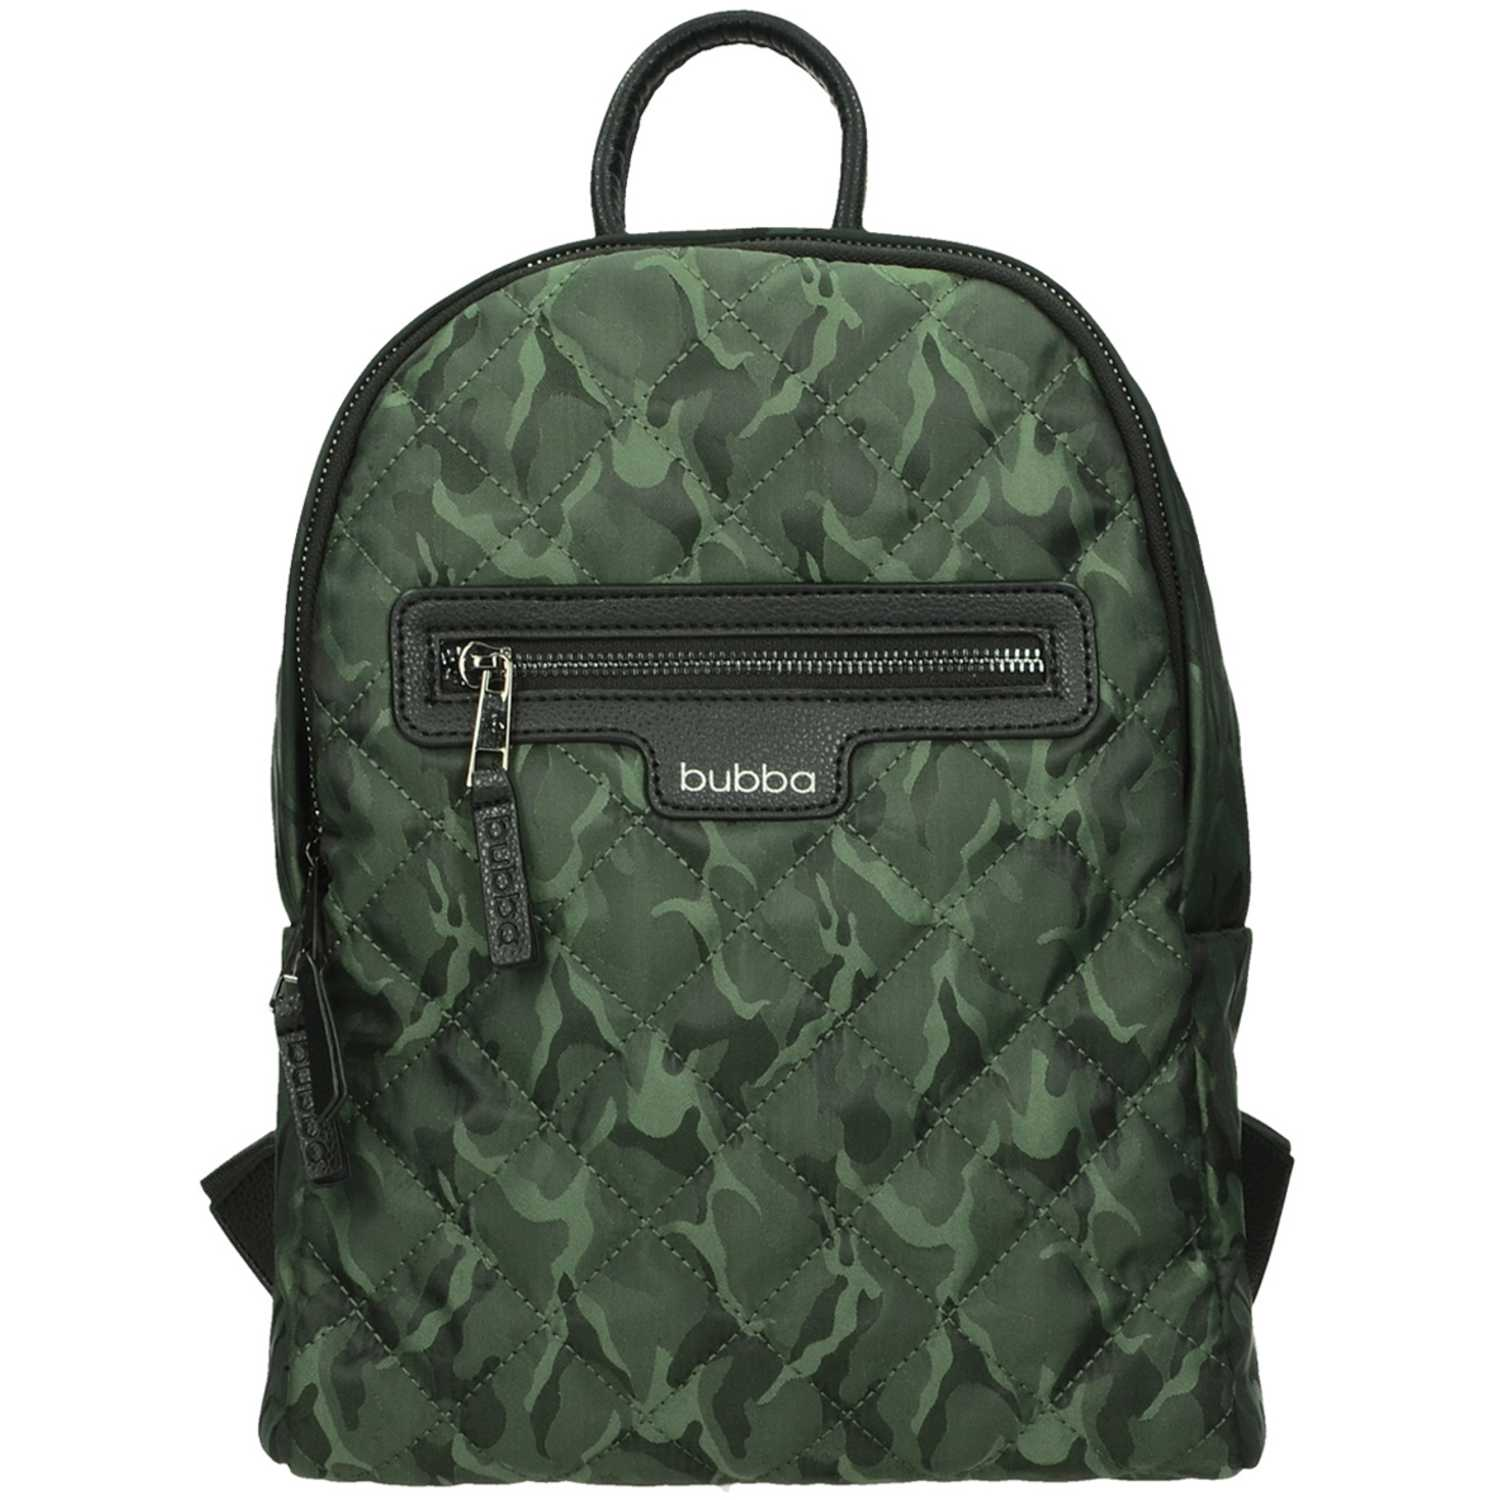 BUBBA Mochila Bubba Glam Regular Militar Mochilas Multipropósitos